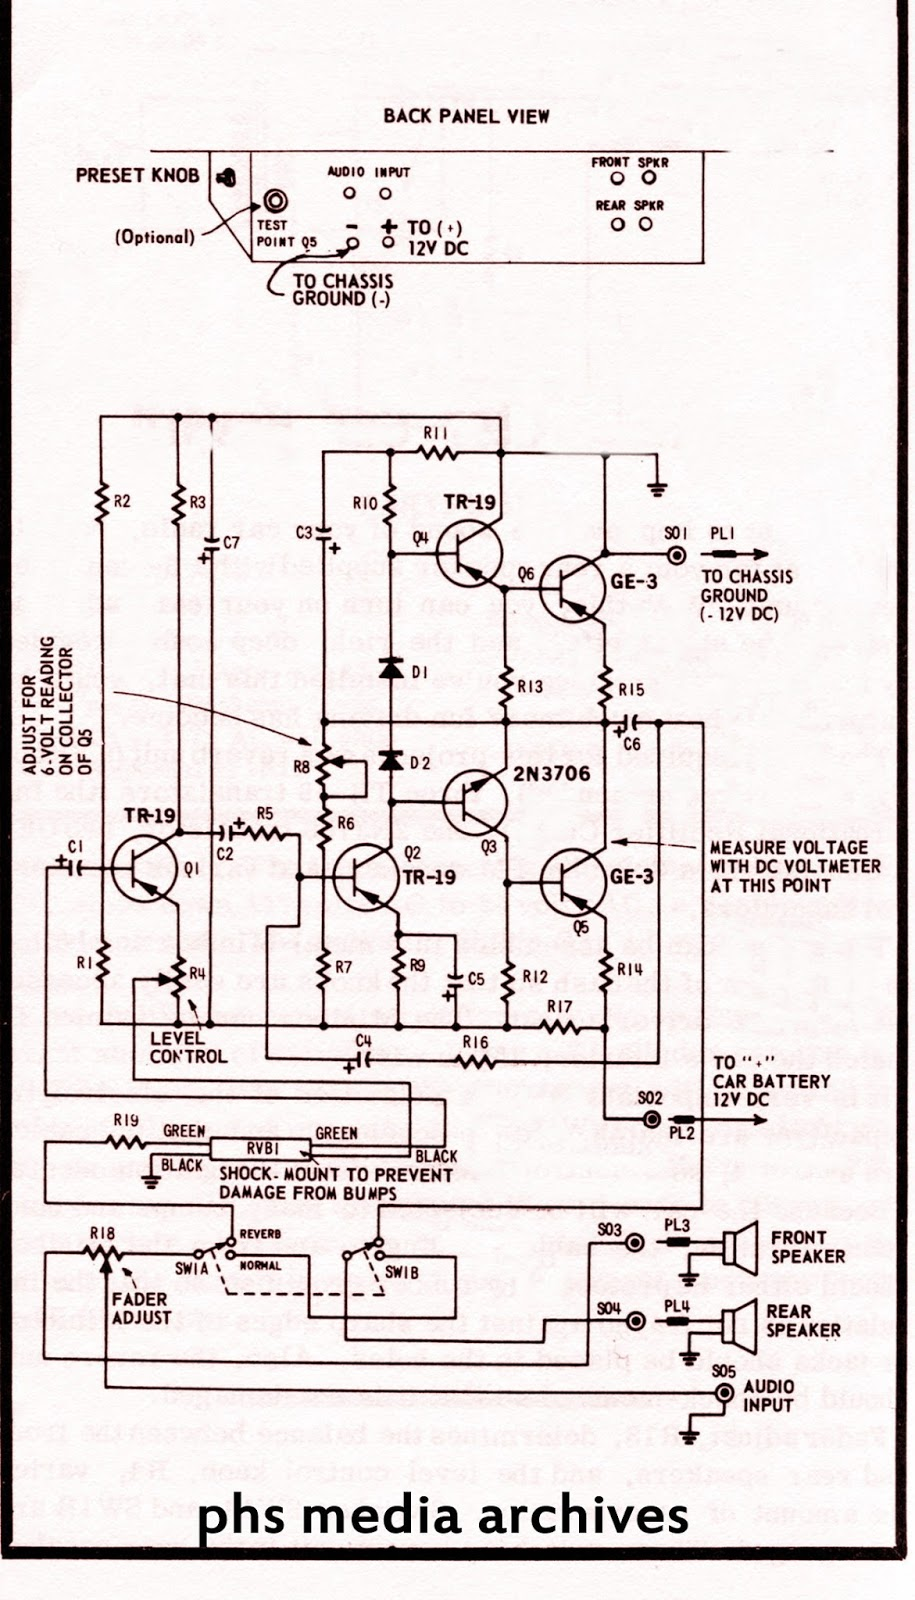 medium resolution of dm007 quadcopter wiring diagram explorer schematic diagram power window circuit diagram of 1966 oldsmobile 33000 series